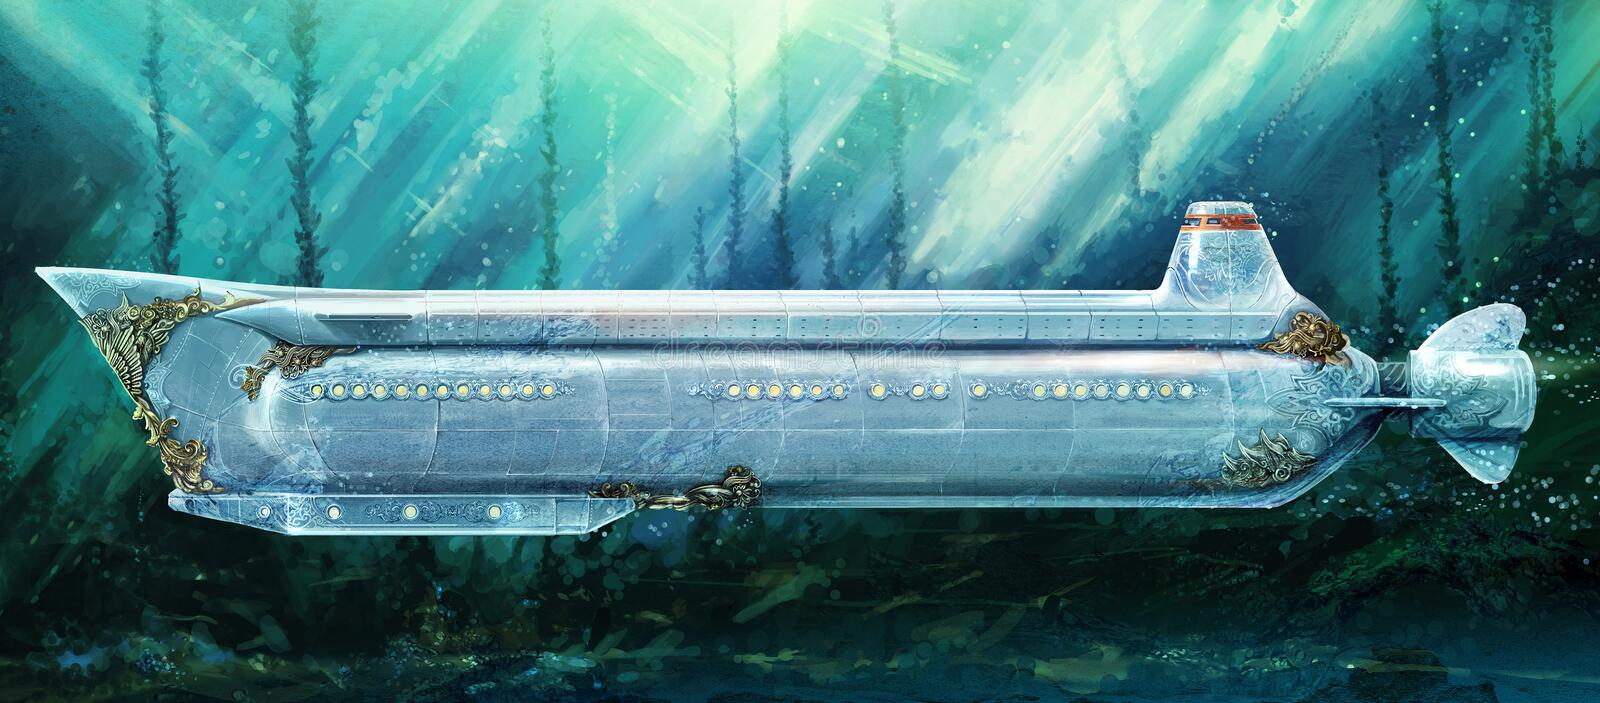 Submarine under water royalty free illustration